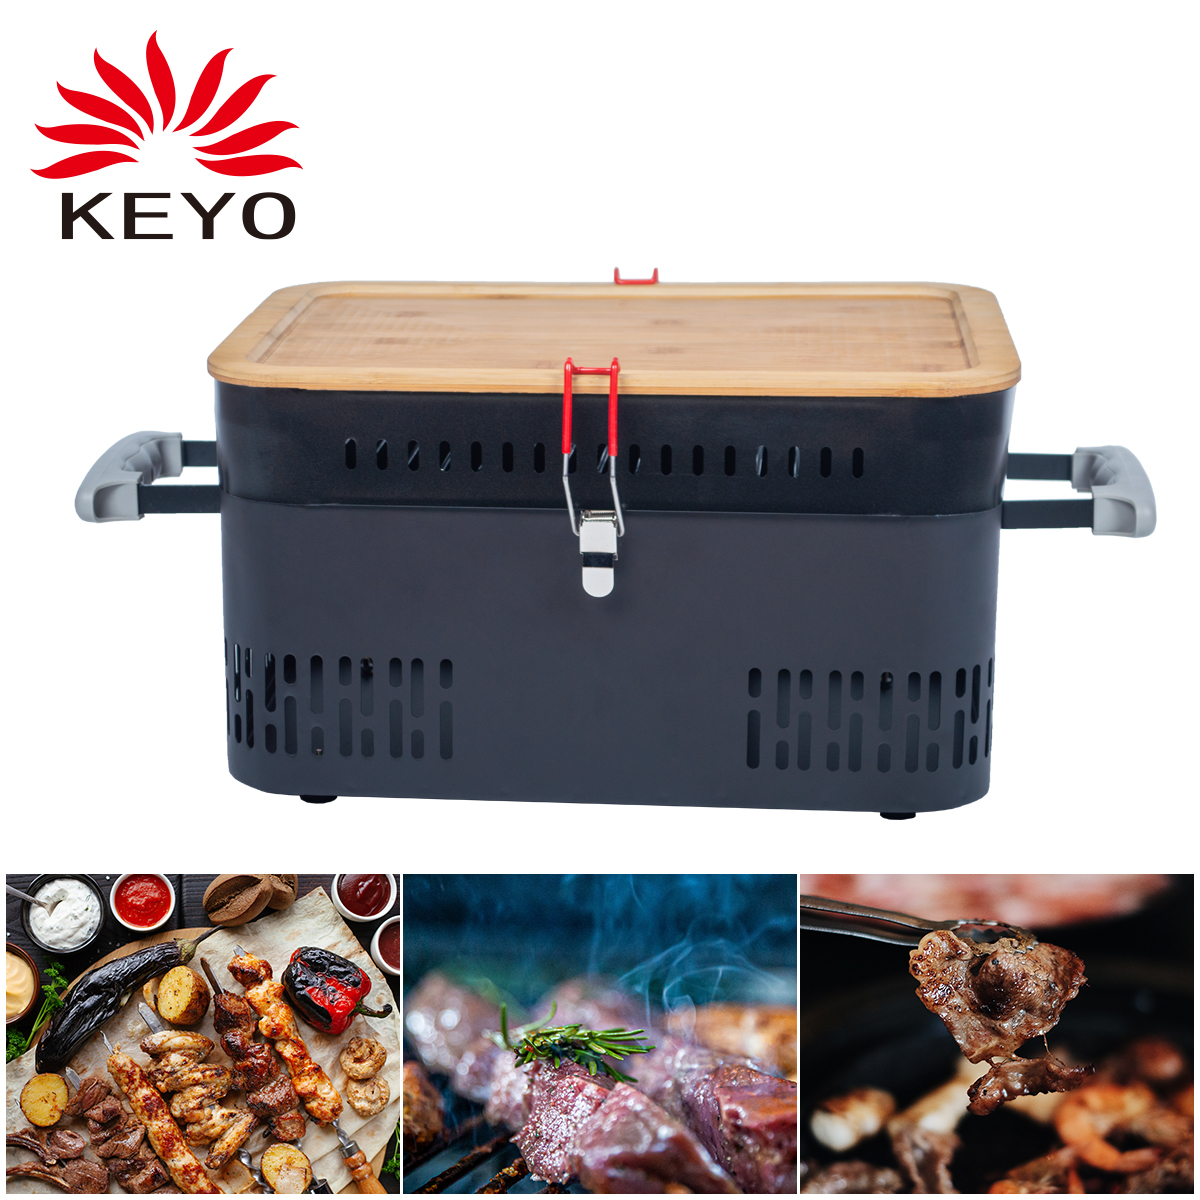 KY4234-A02 Portable grill